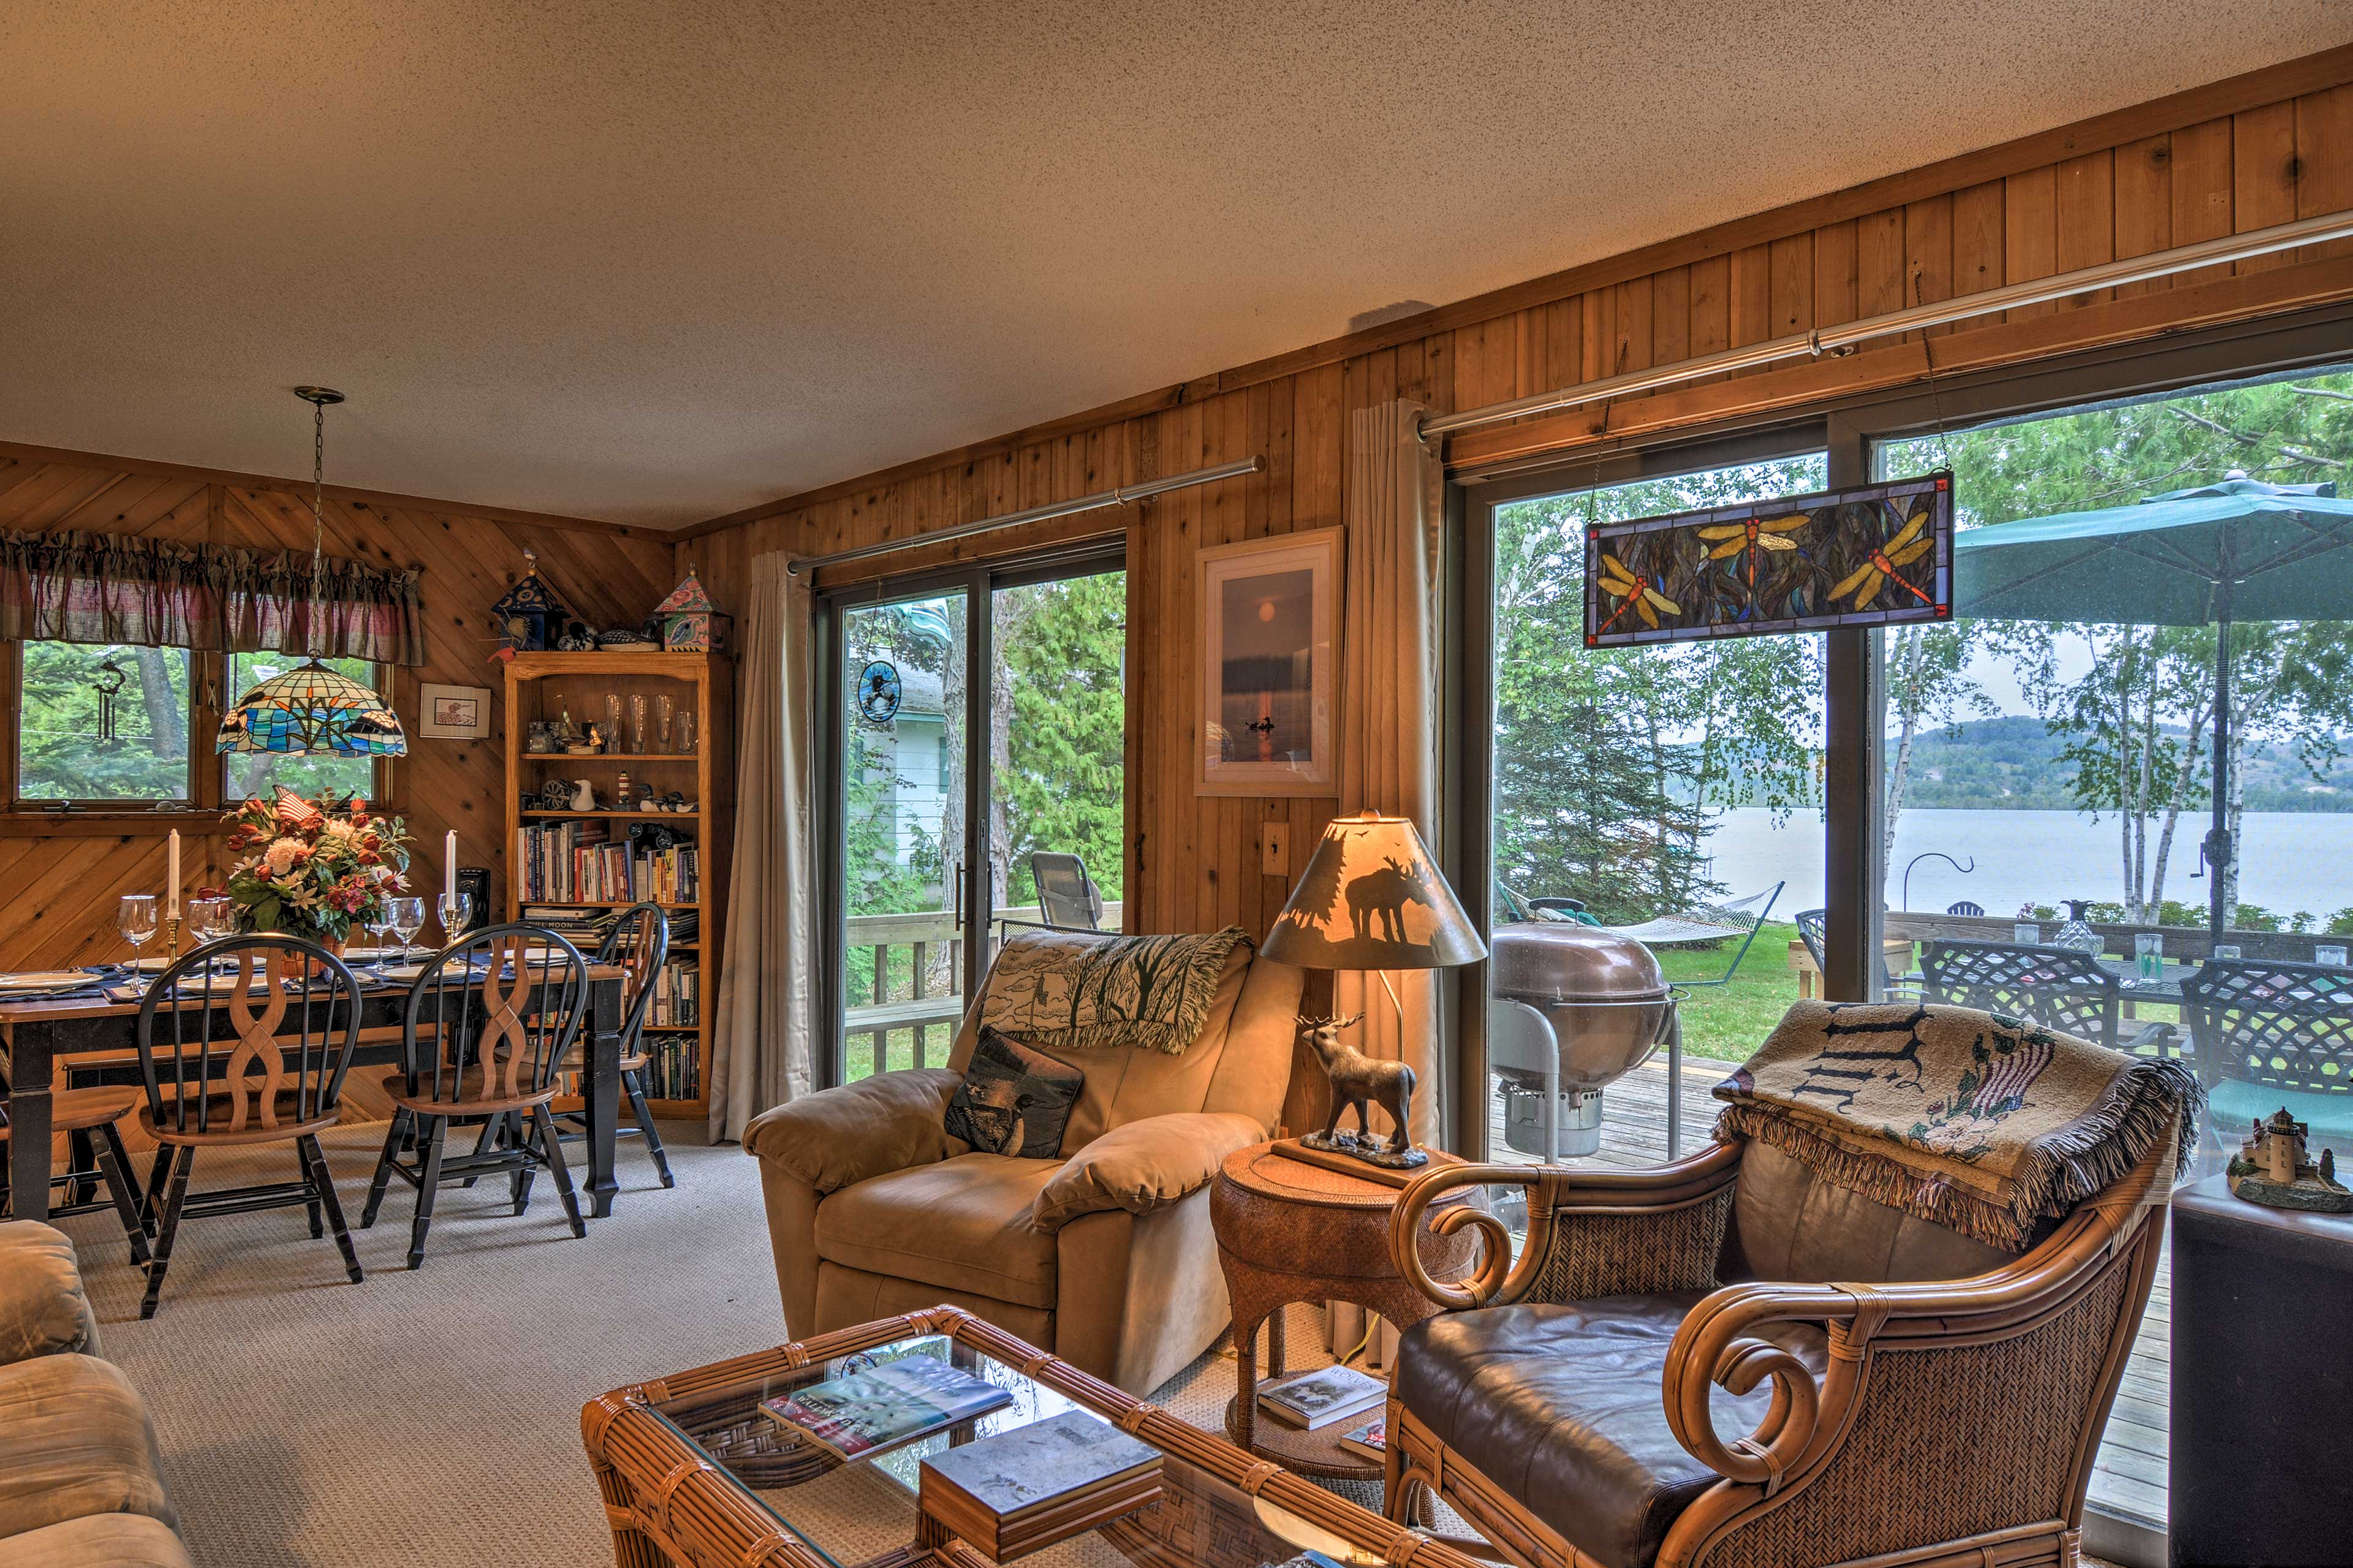 Two sets of sliding glass doors afford water views and access to the deck.